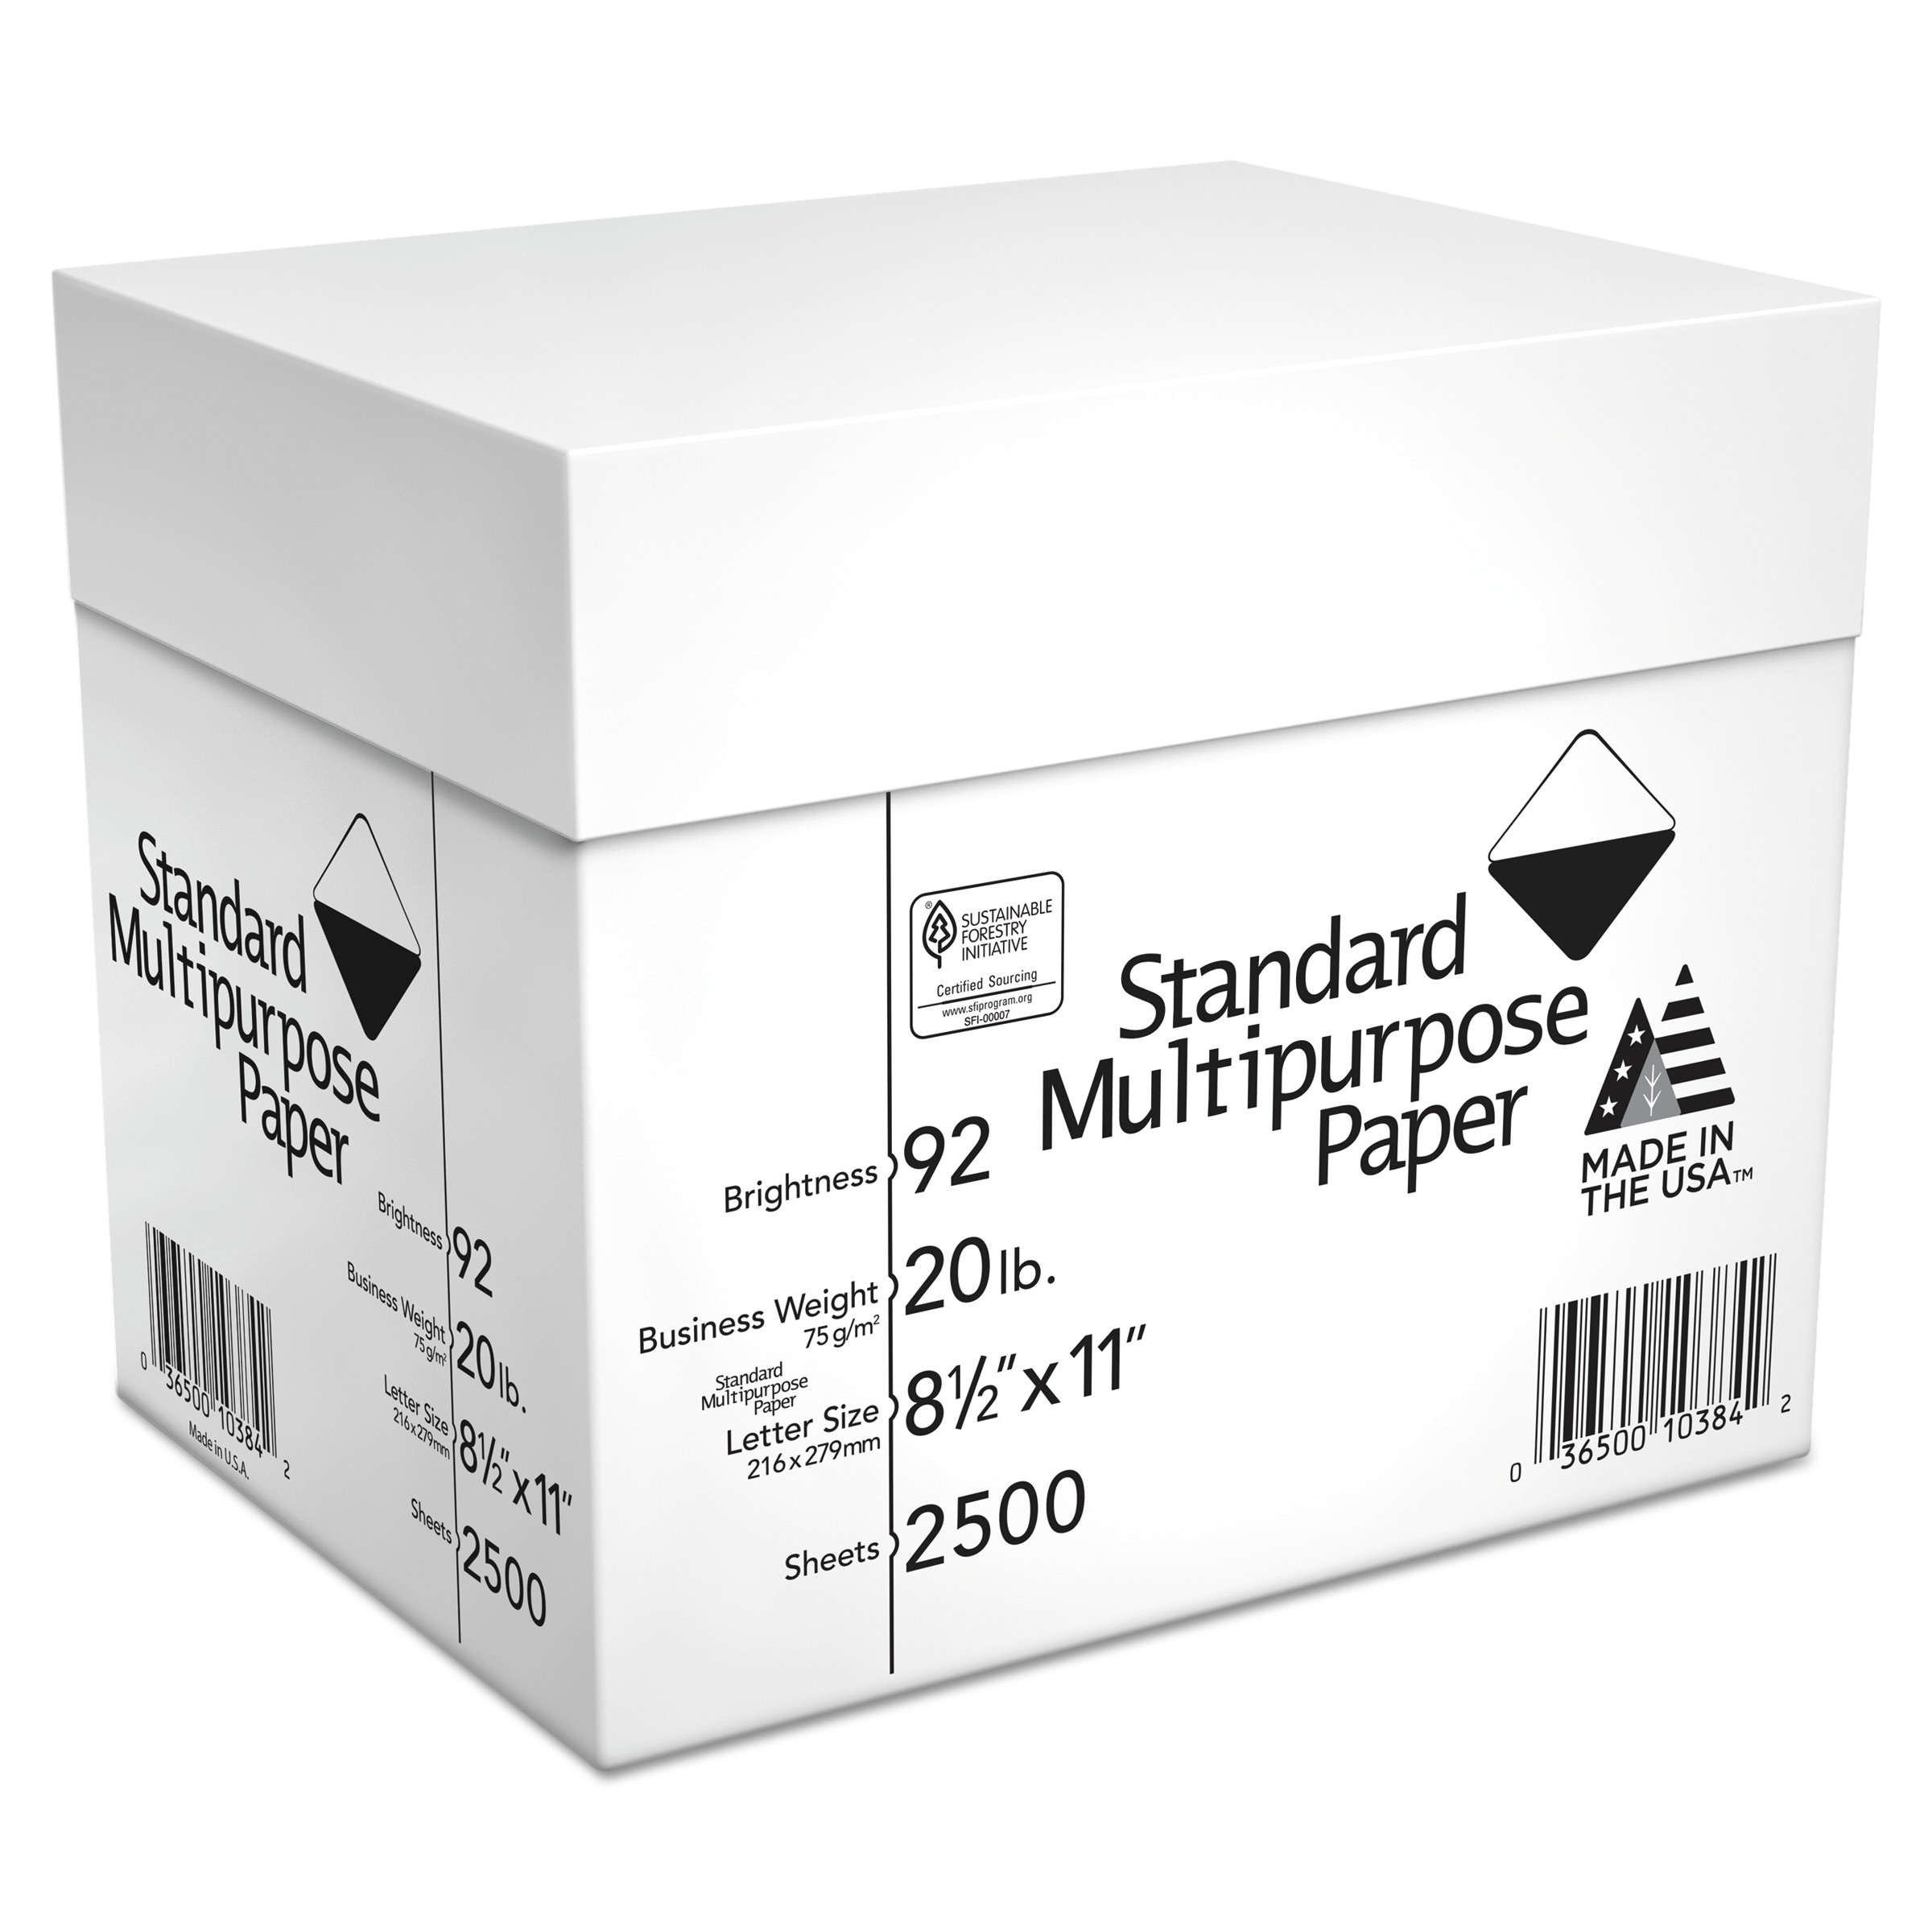 Georgia Pacific Standard Multipurpose Paper, 8 1/2 x 11, 92 Bright, White, 2500 Sheets/Carton